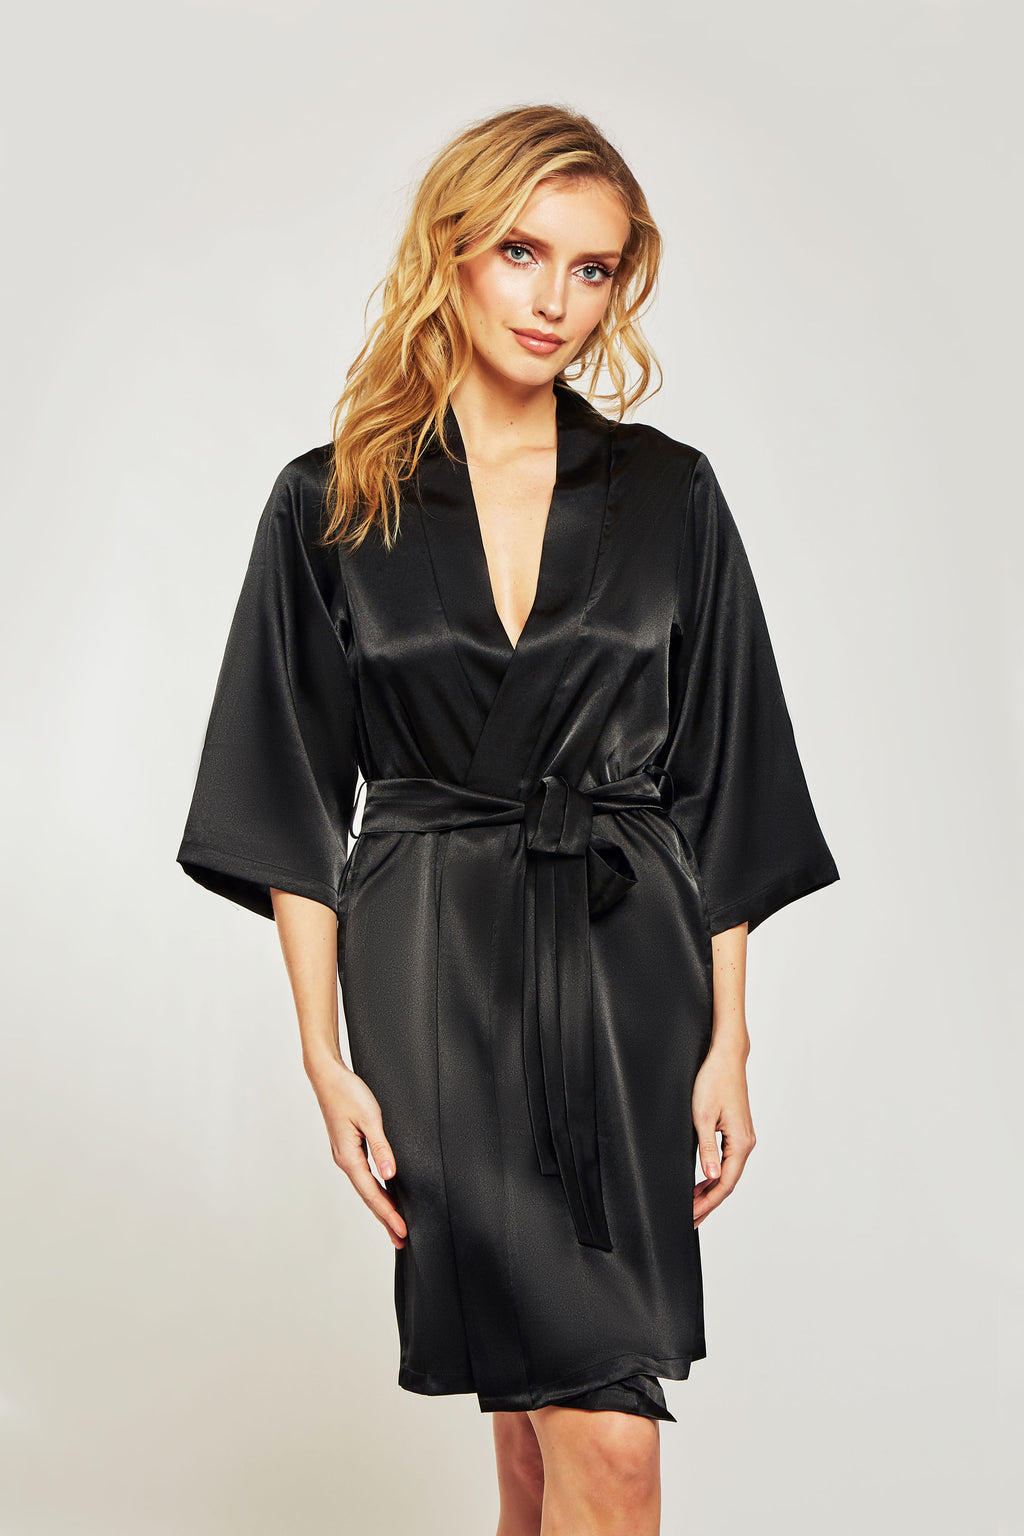 Satin robe with removable tie.